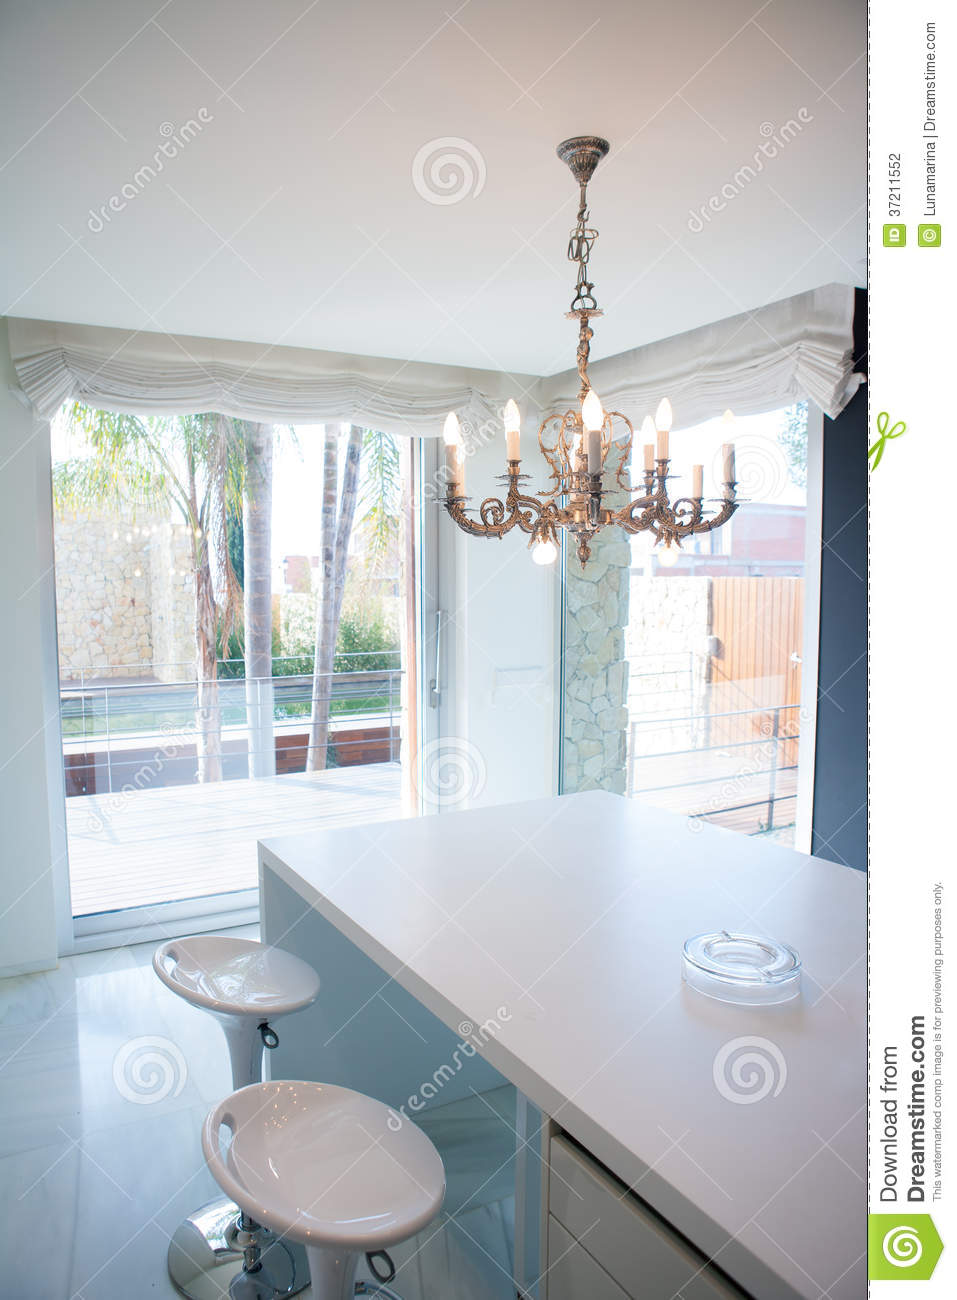 table de cuisine blanche moderne avec le lustre de vintage. Black Bedroom Furniture Sets. Home Design Ideas